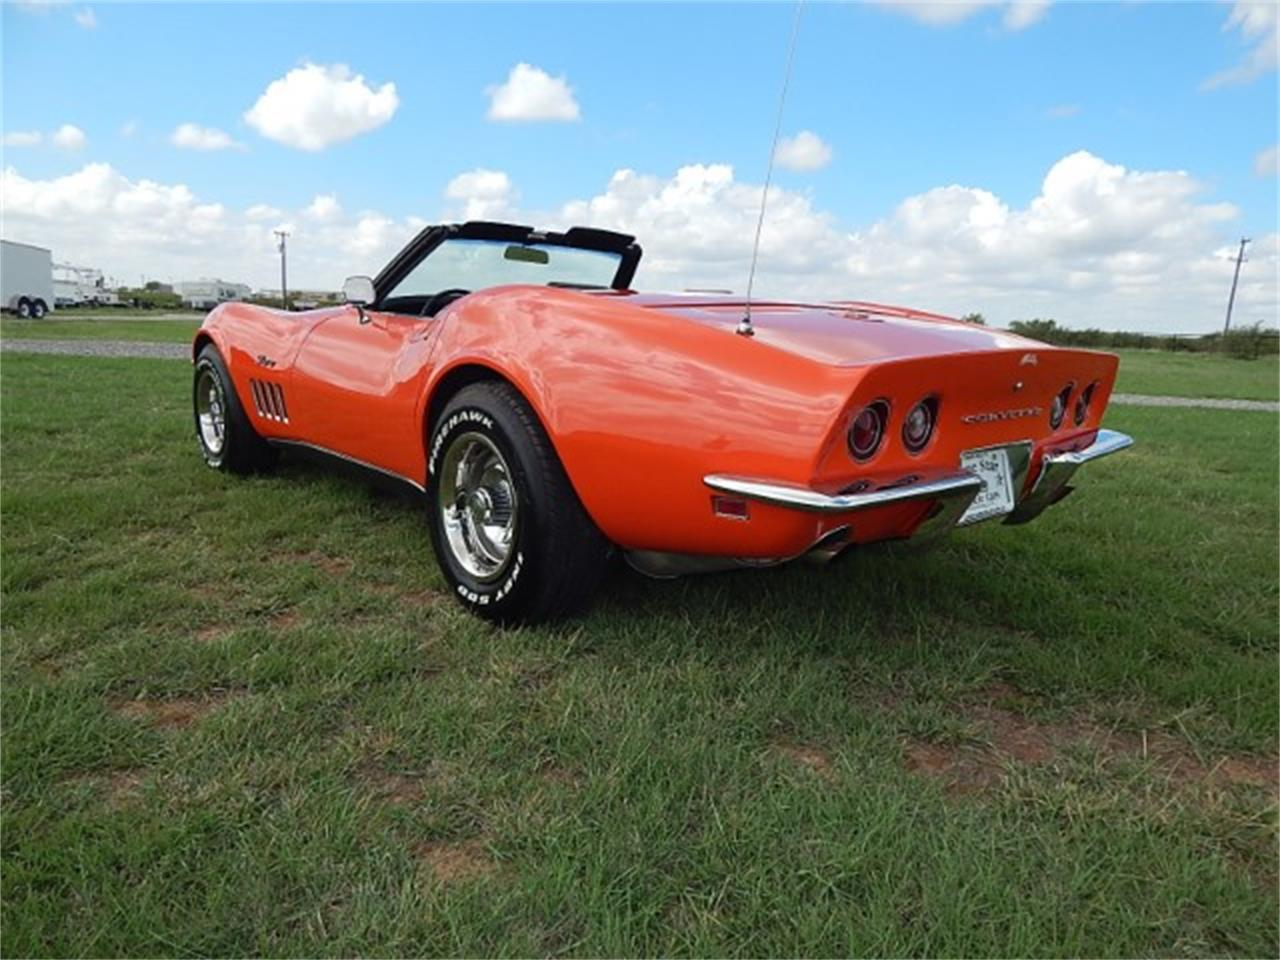 Large Picture of 1969 Corvette located in Wichita Falls Texas - $59,950.00 - L8JY